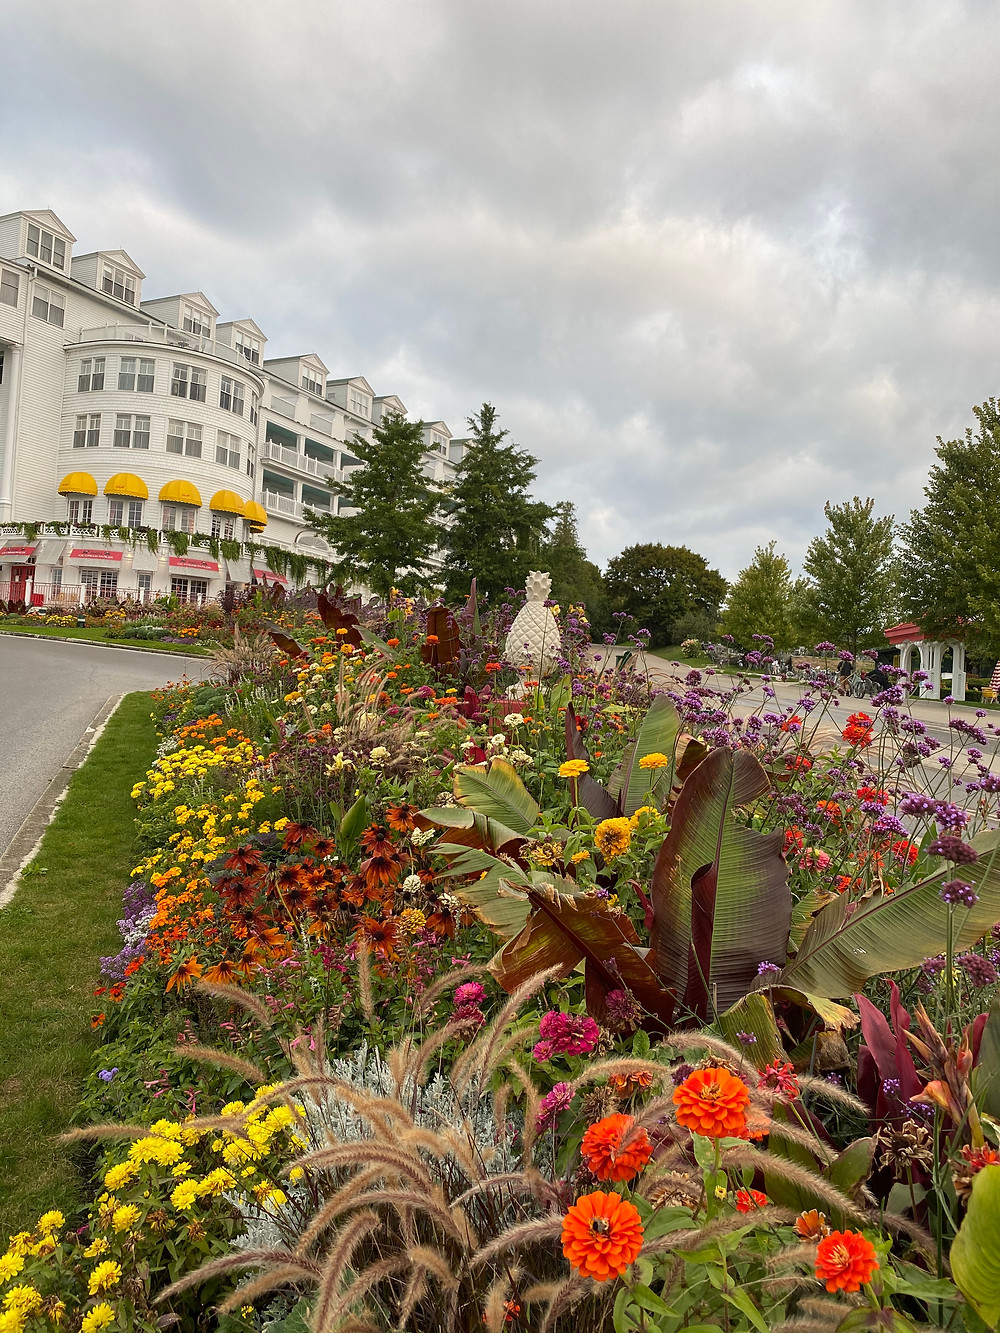 Mackinac Island | The Grande Hotel, Hotel front and gardens